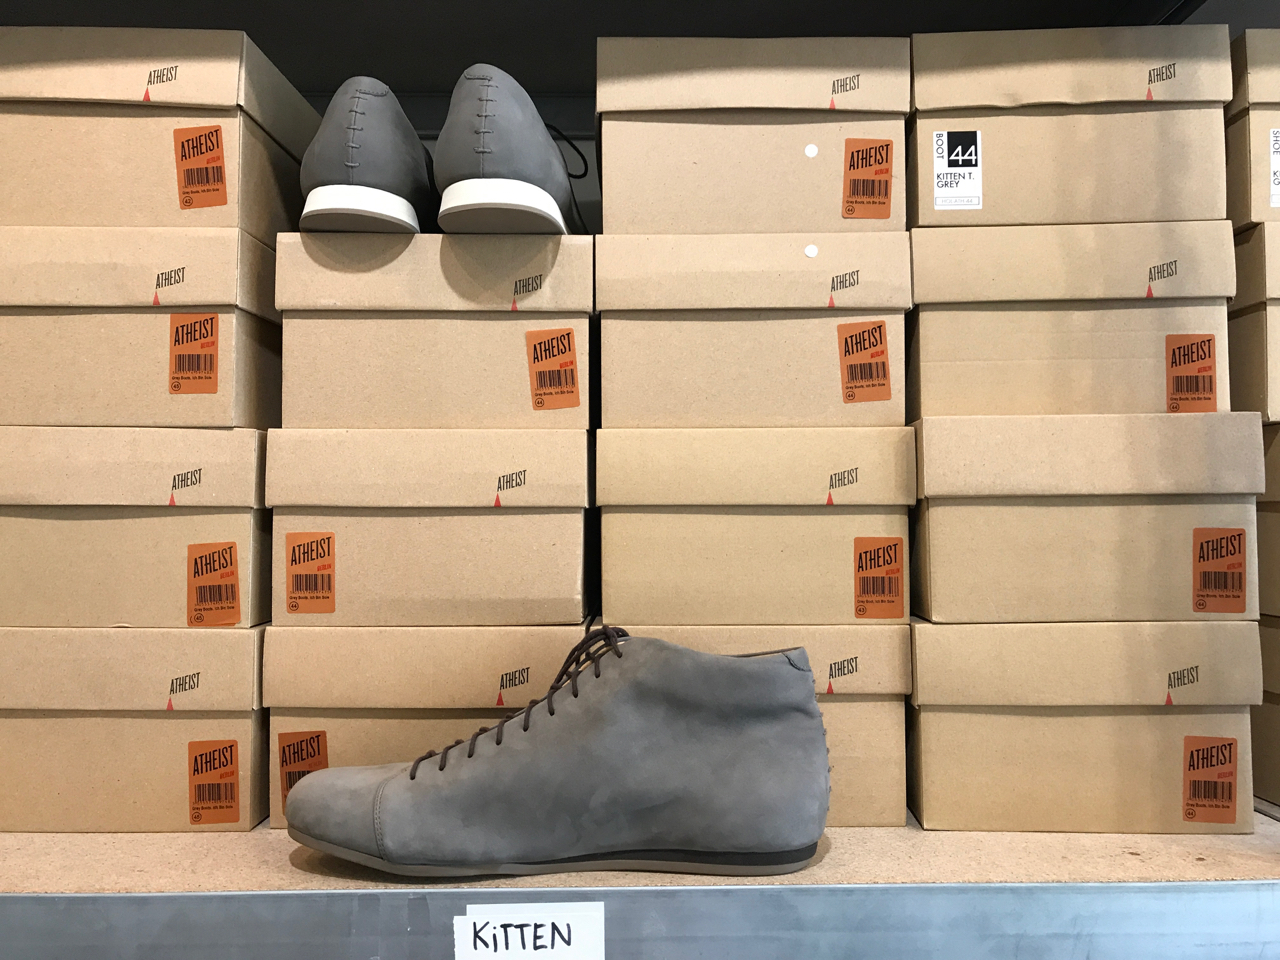 A photo of kitten testicle grey boots and sneakers in their boxes at Atheist Shoes in Berlin, Germany.